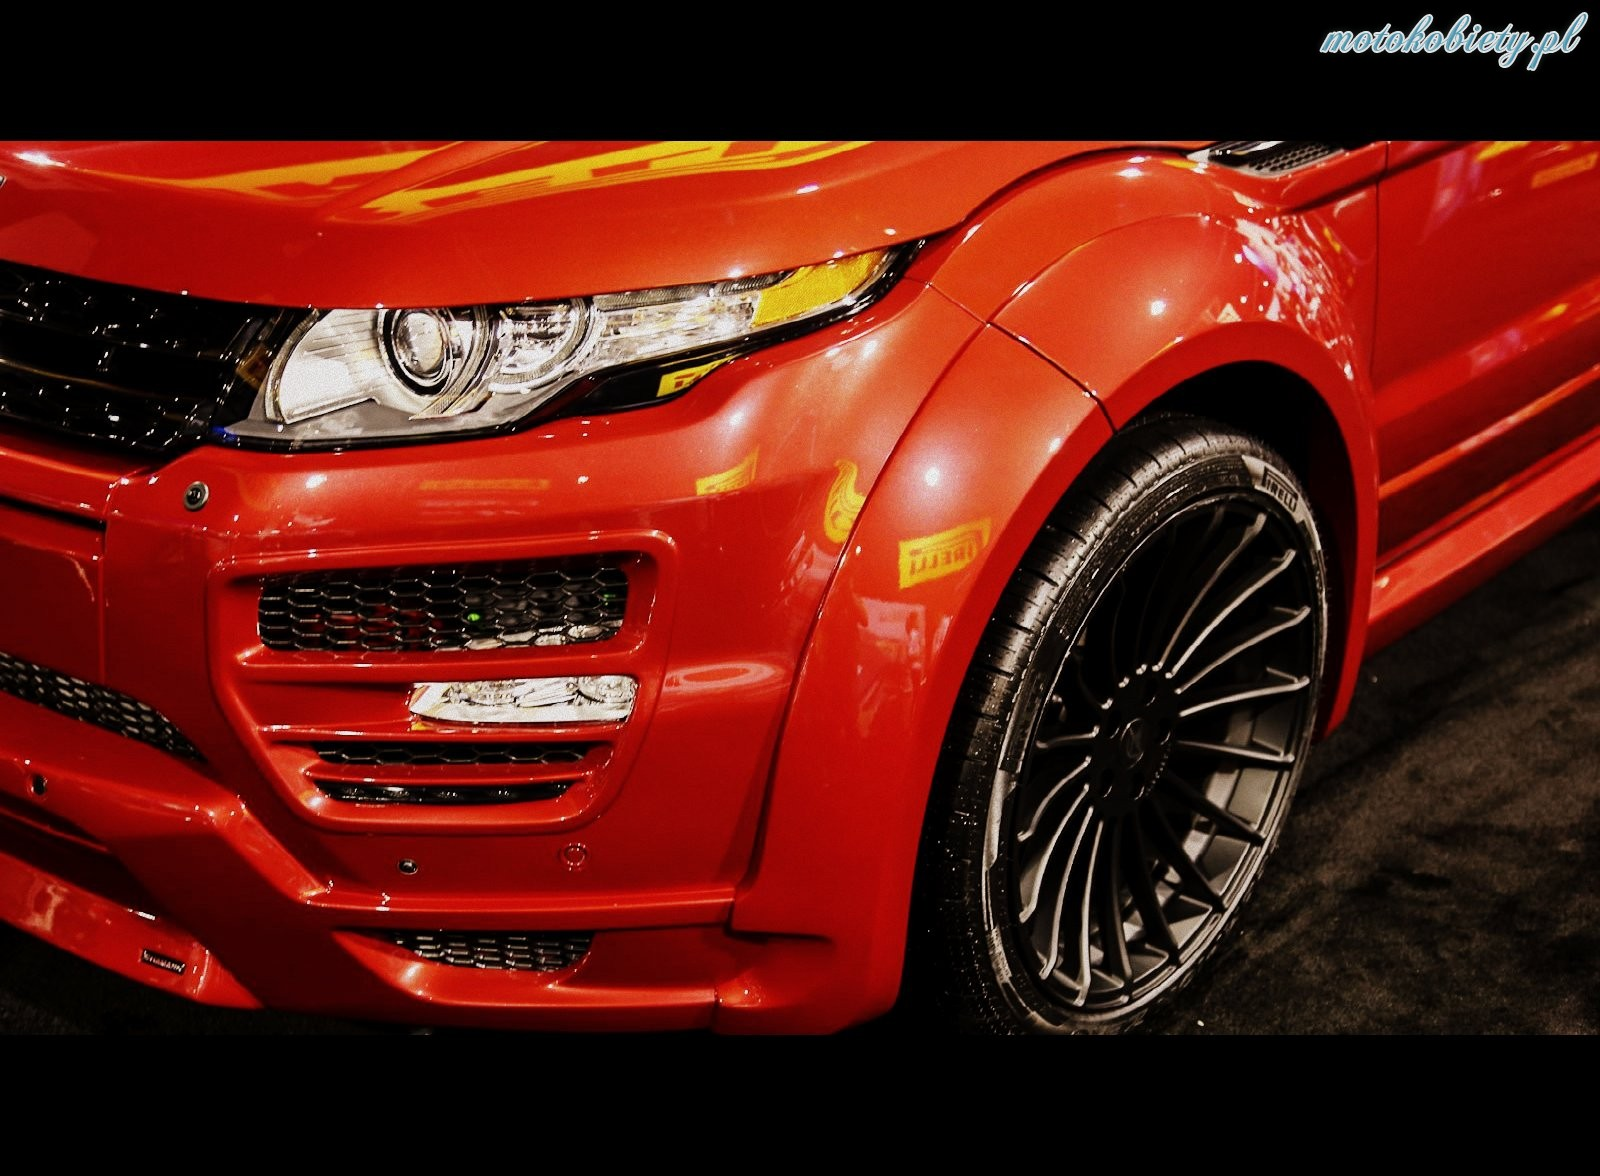 Range Rover Evoque By Hamann 1 At Range Rover Evoque By Hamann | Auto ...